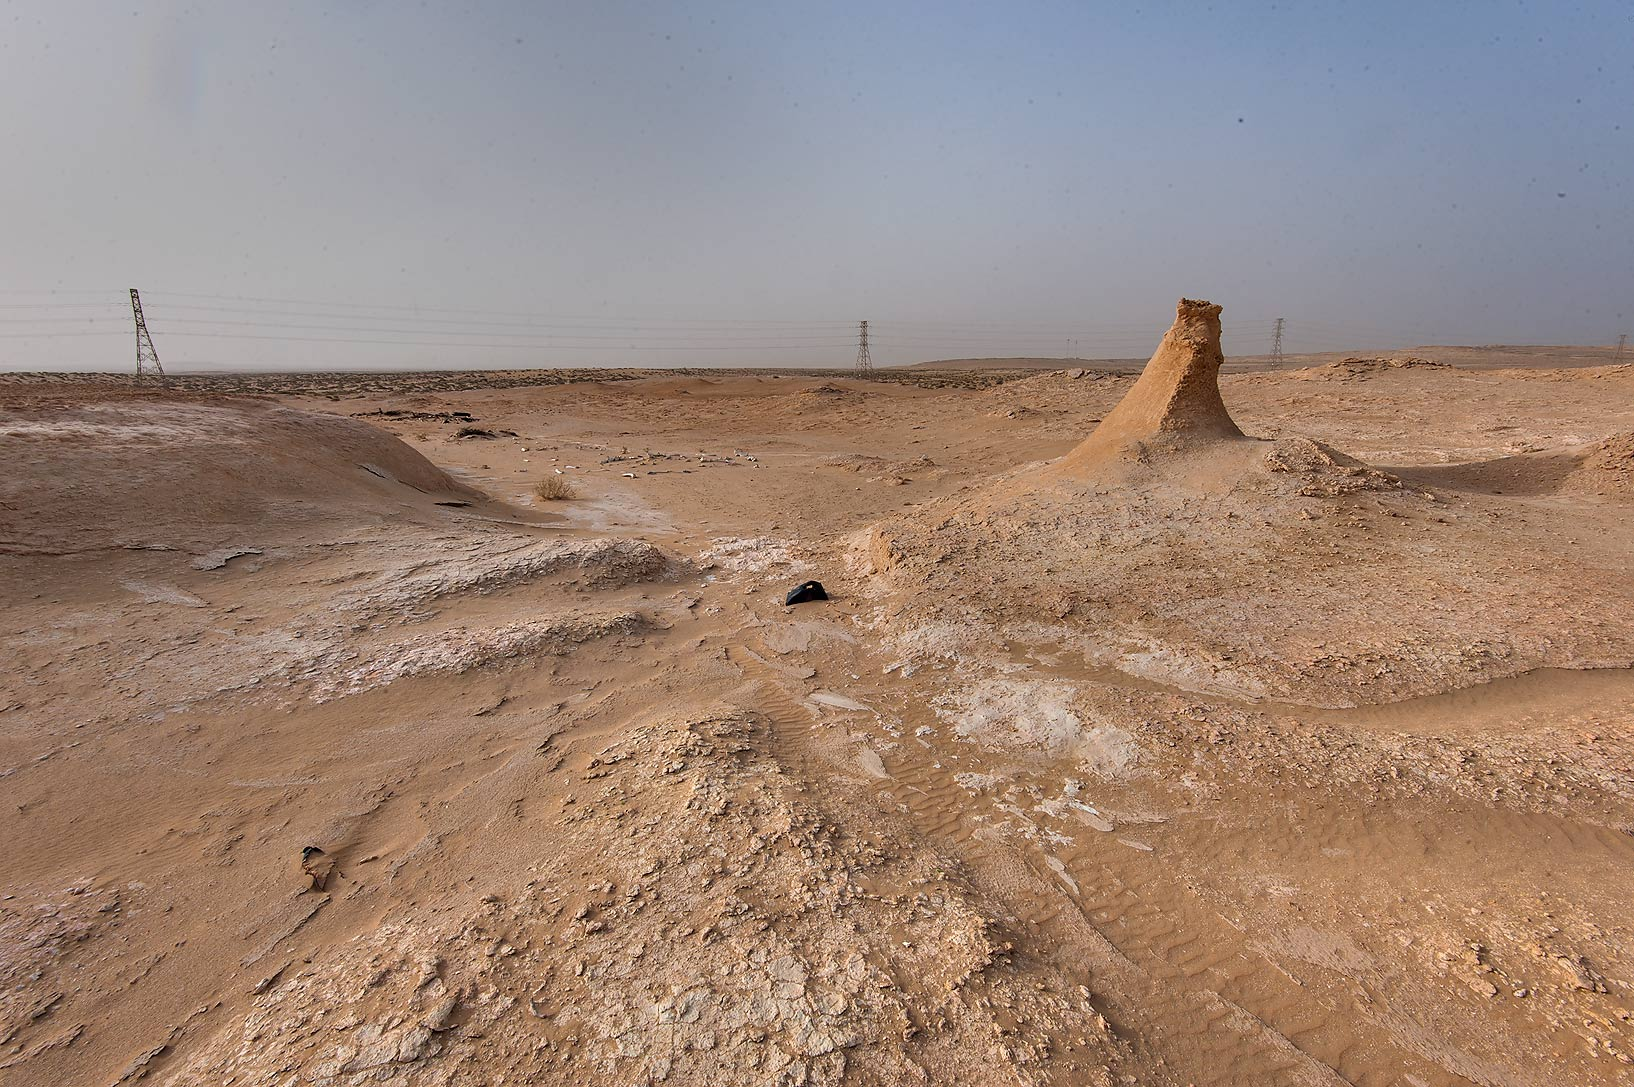 Erosion of limestone near Salwa Rd. in area of Rawdat Ekdaim. Southern Qatar